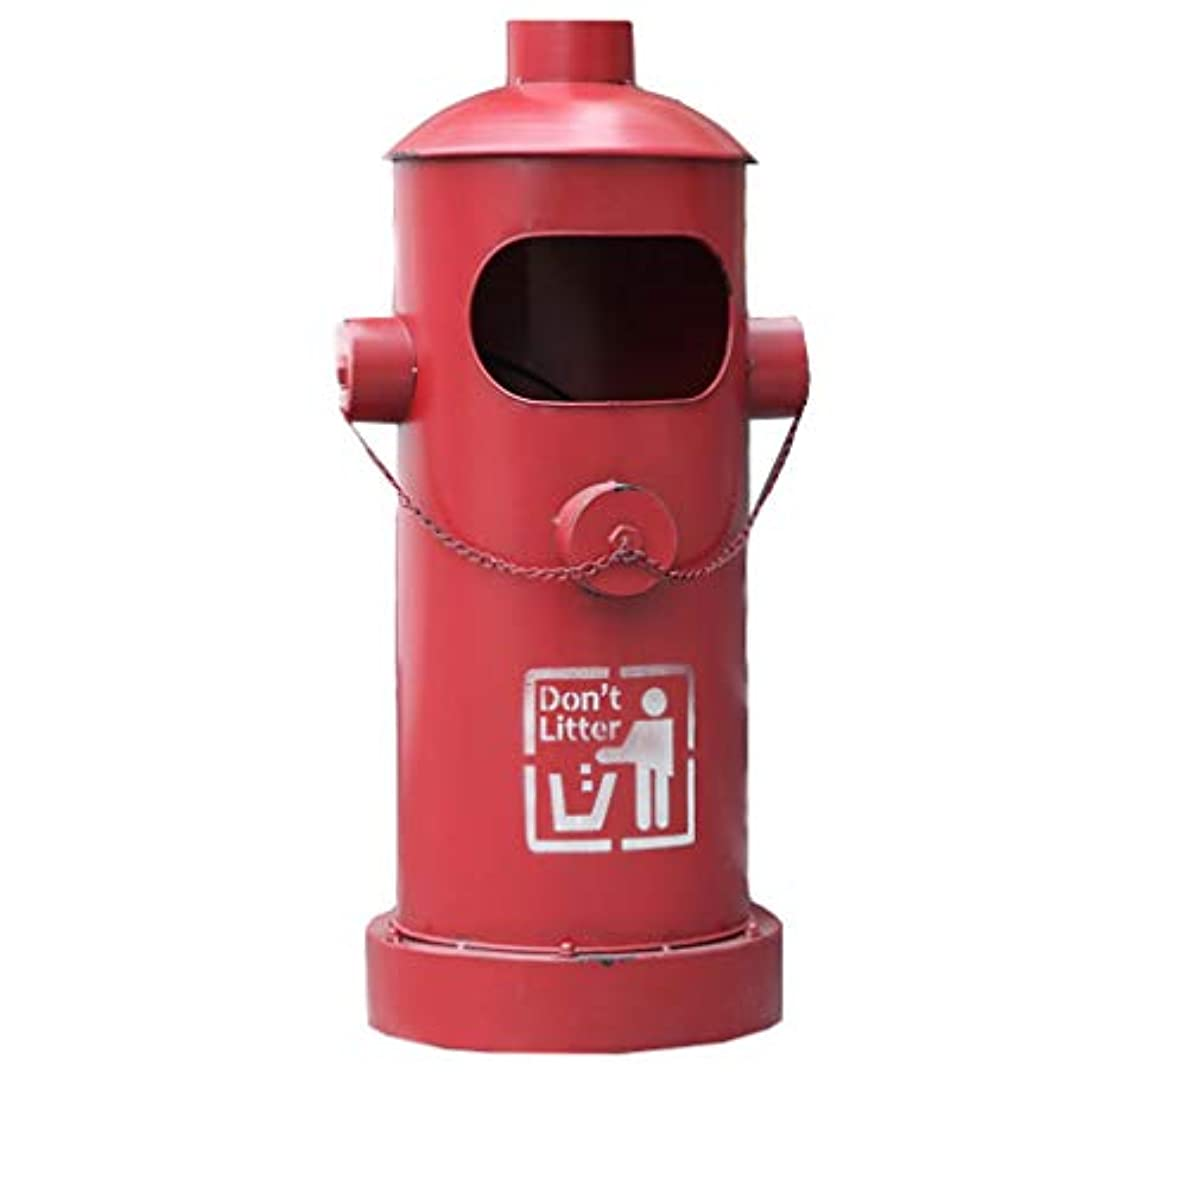 American Retro Industrial Style Outdoor Wrought Iron Hydrant Shape Trash Can Office Rubbish Bin Waste Container,Garbage Can (Color : Red)